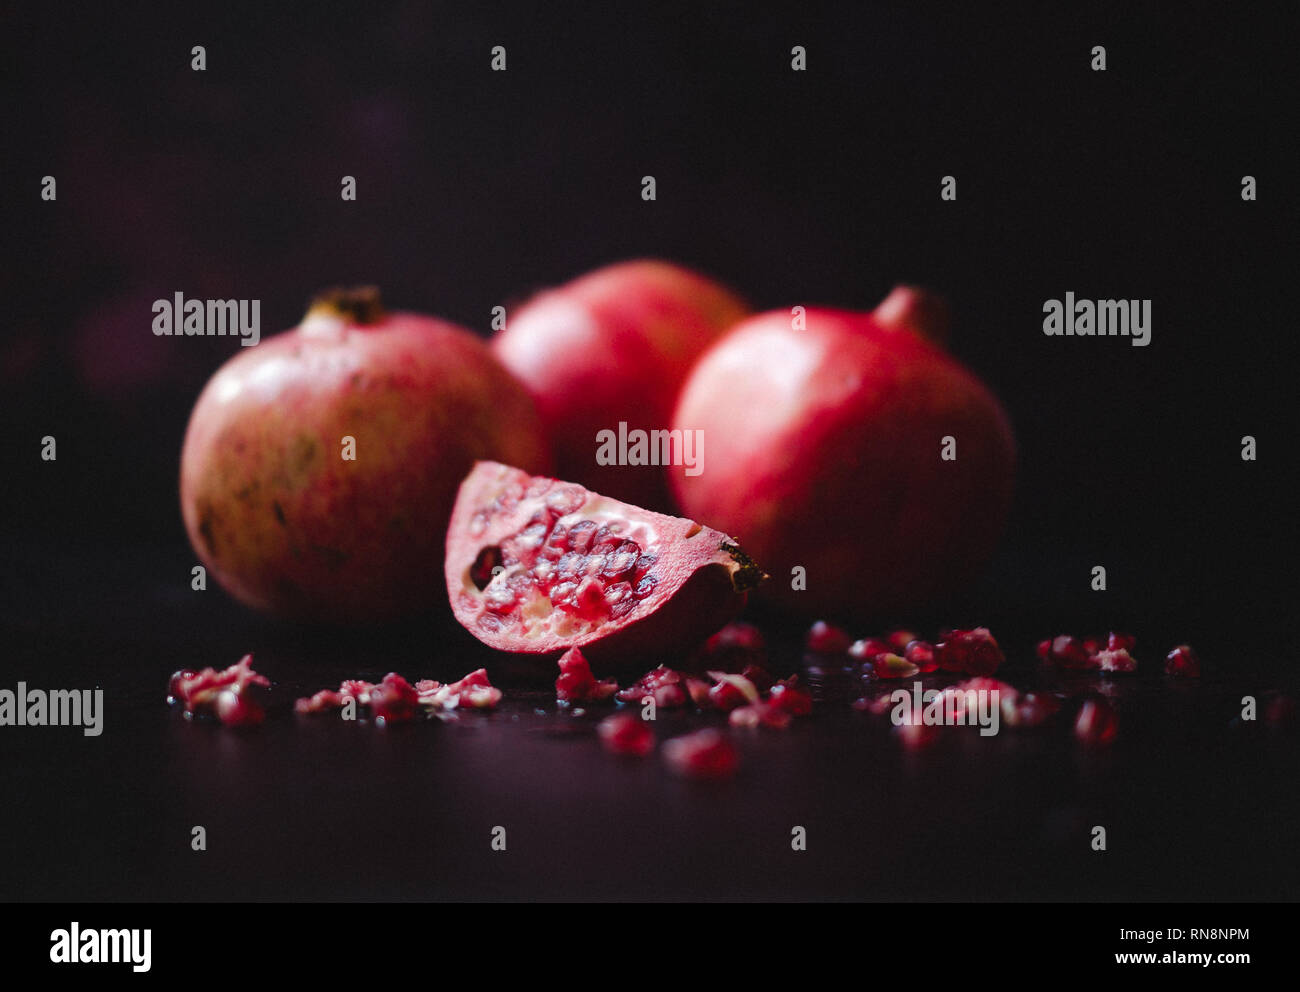 Still life of pomegranates in a Dutch Masters style, shot in natural light. The fruit has been sliced open to reveal the gem-like seeds within. - Stock Image